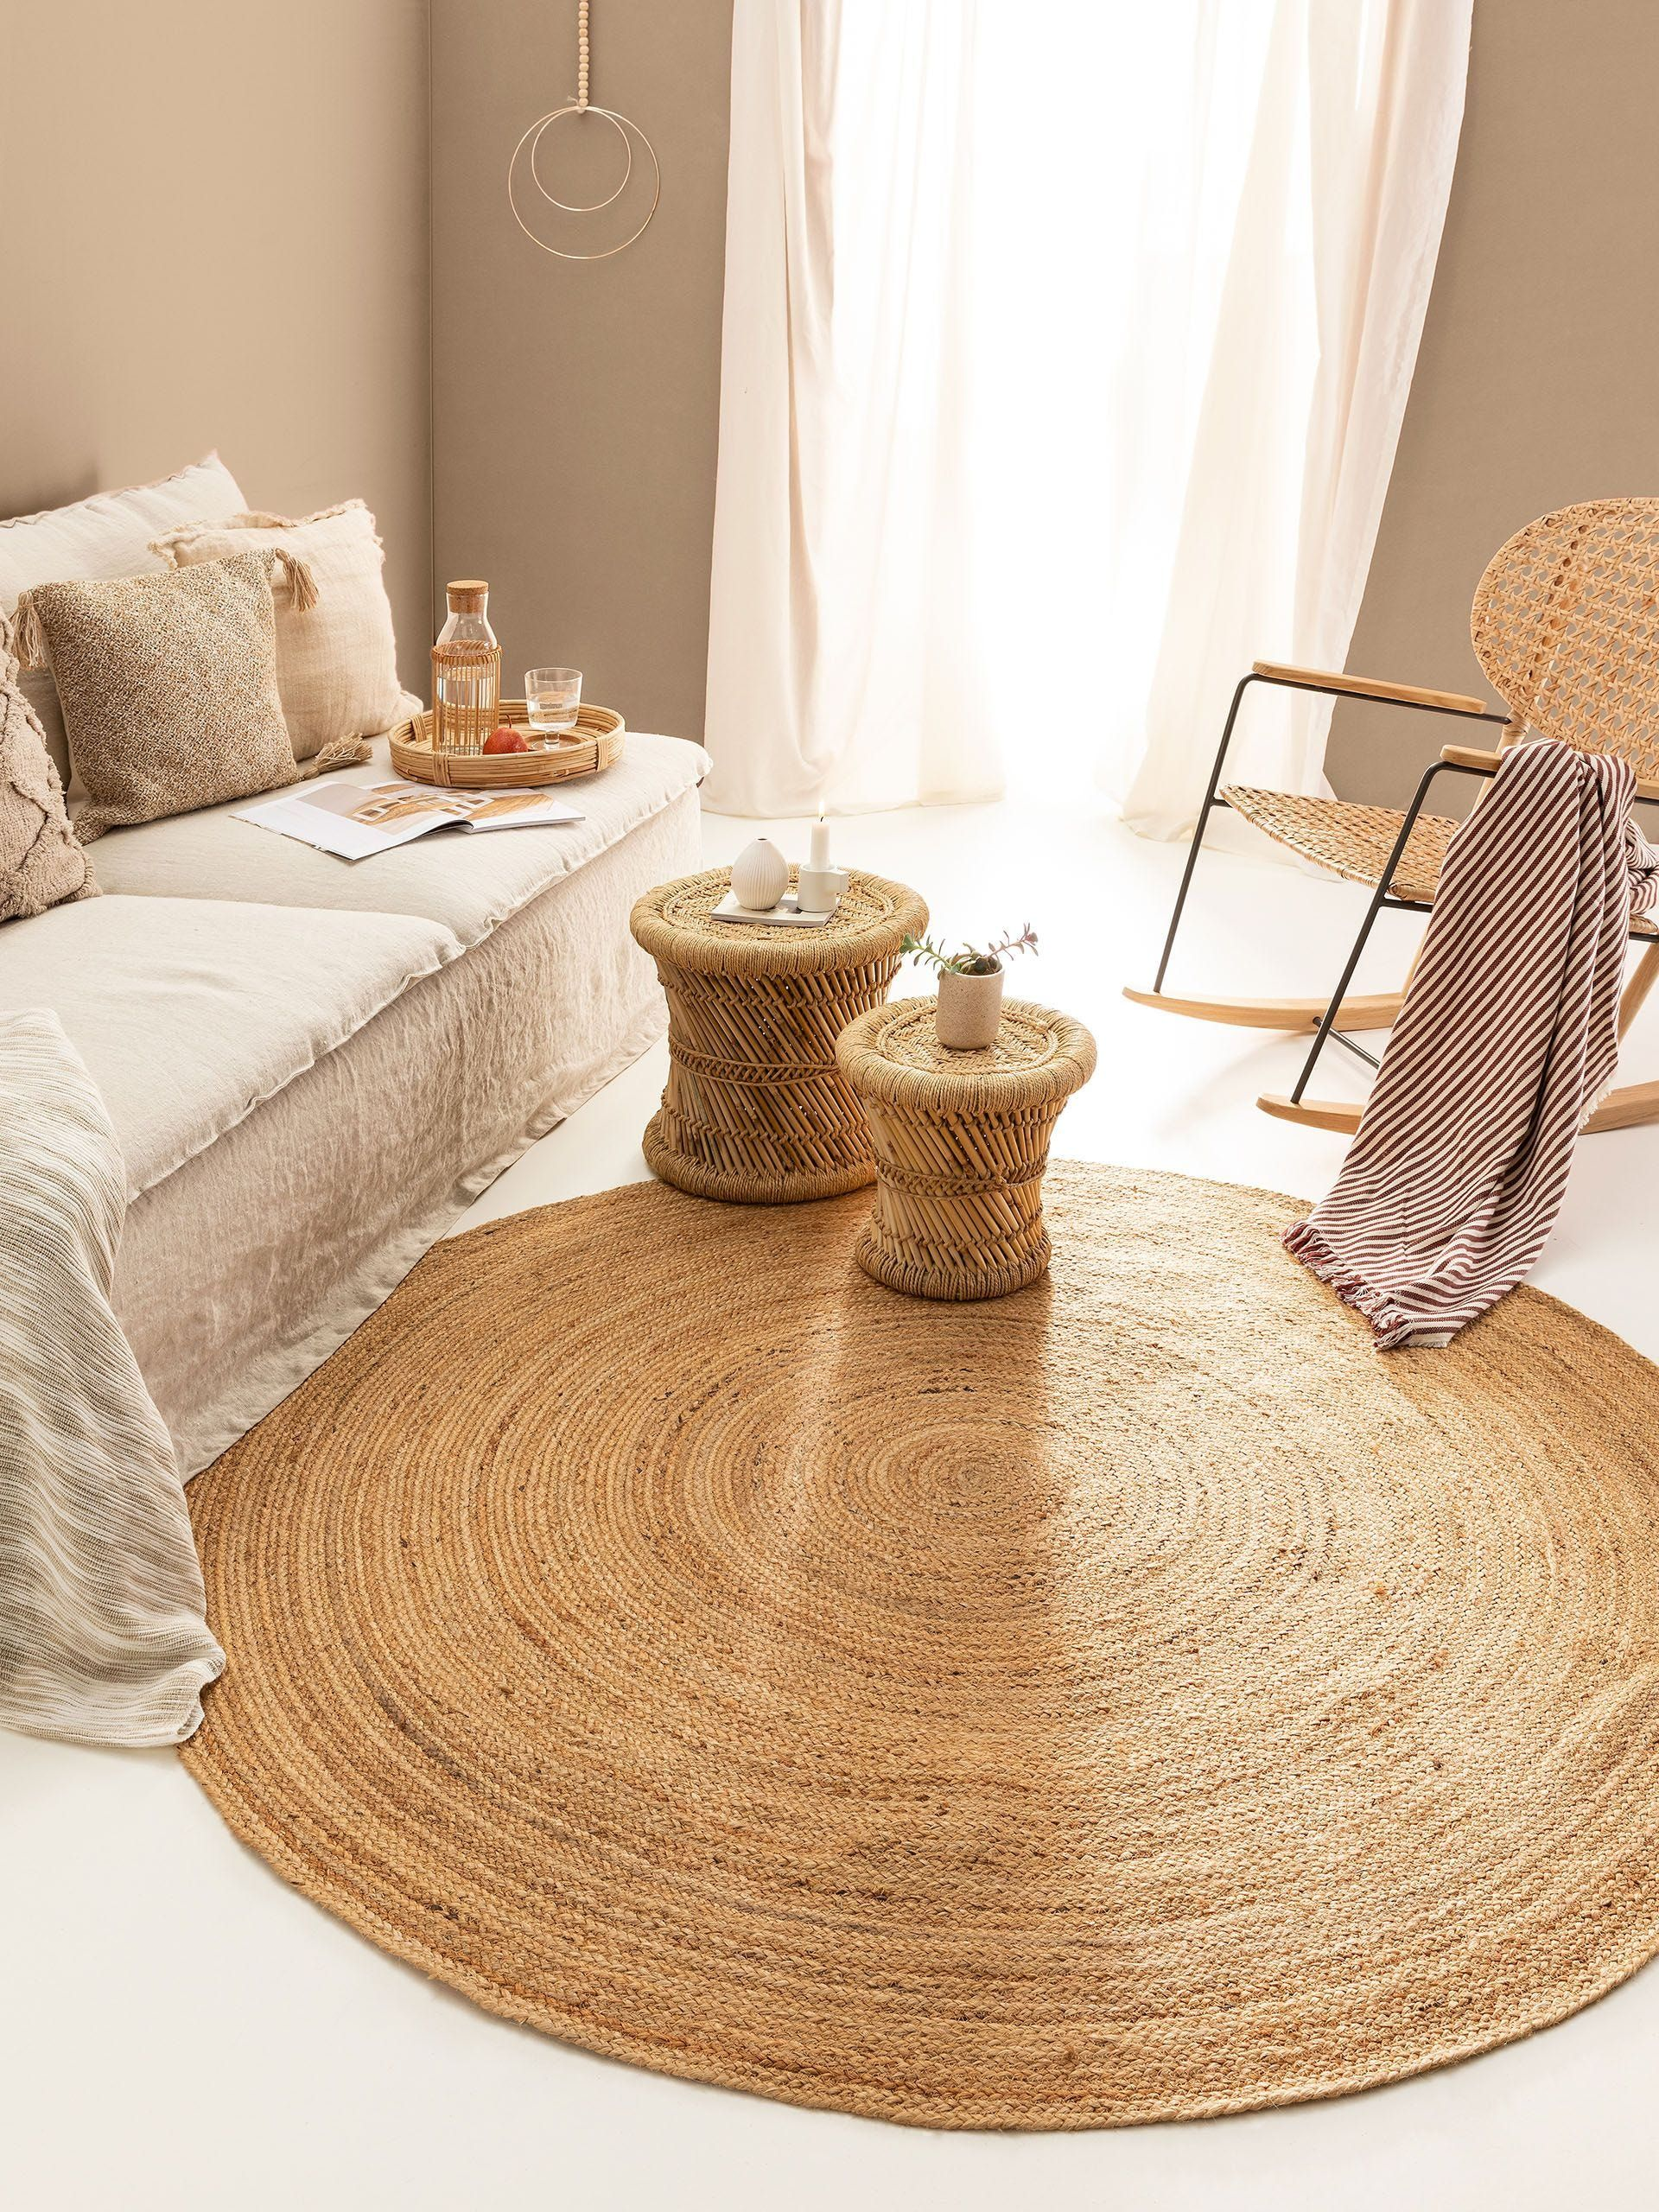 The Hudson Woven Jute Rug S Chunky Natural Texture And Neutral Colors Create A Casual Chic Vibe To Add Your Home Try Layering With One